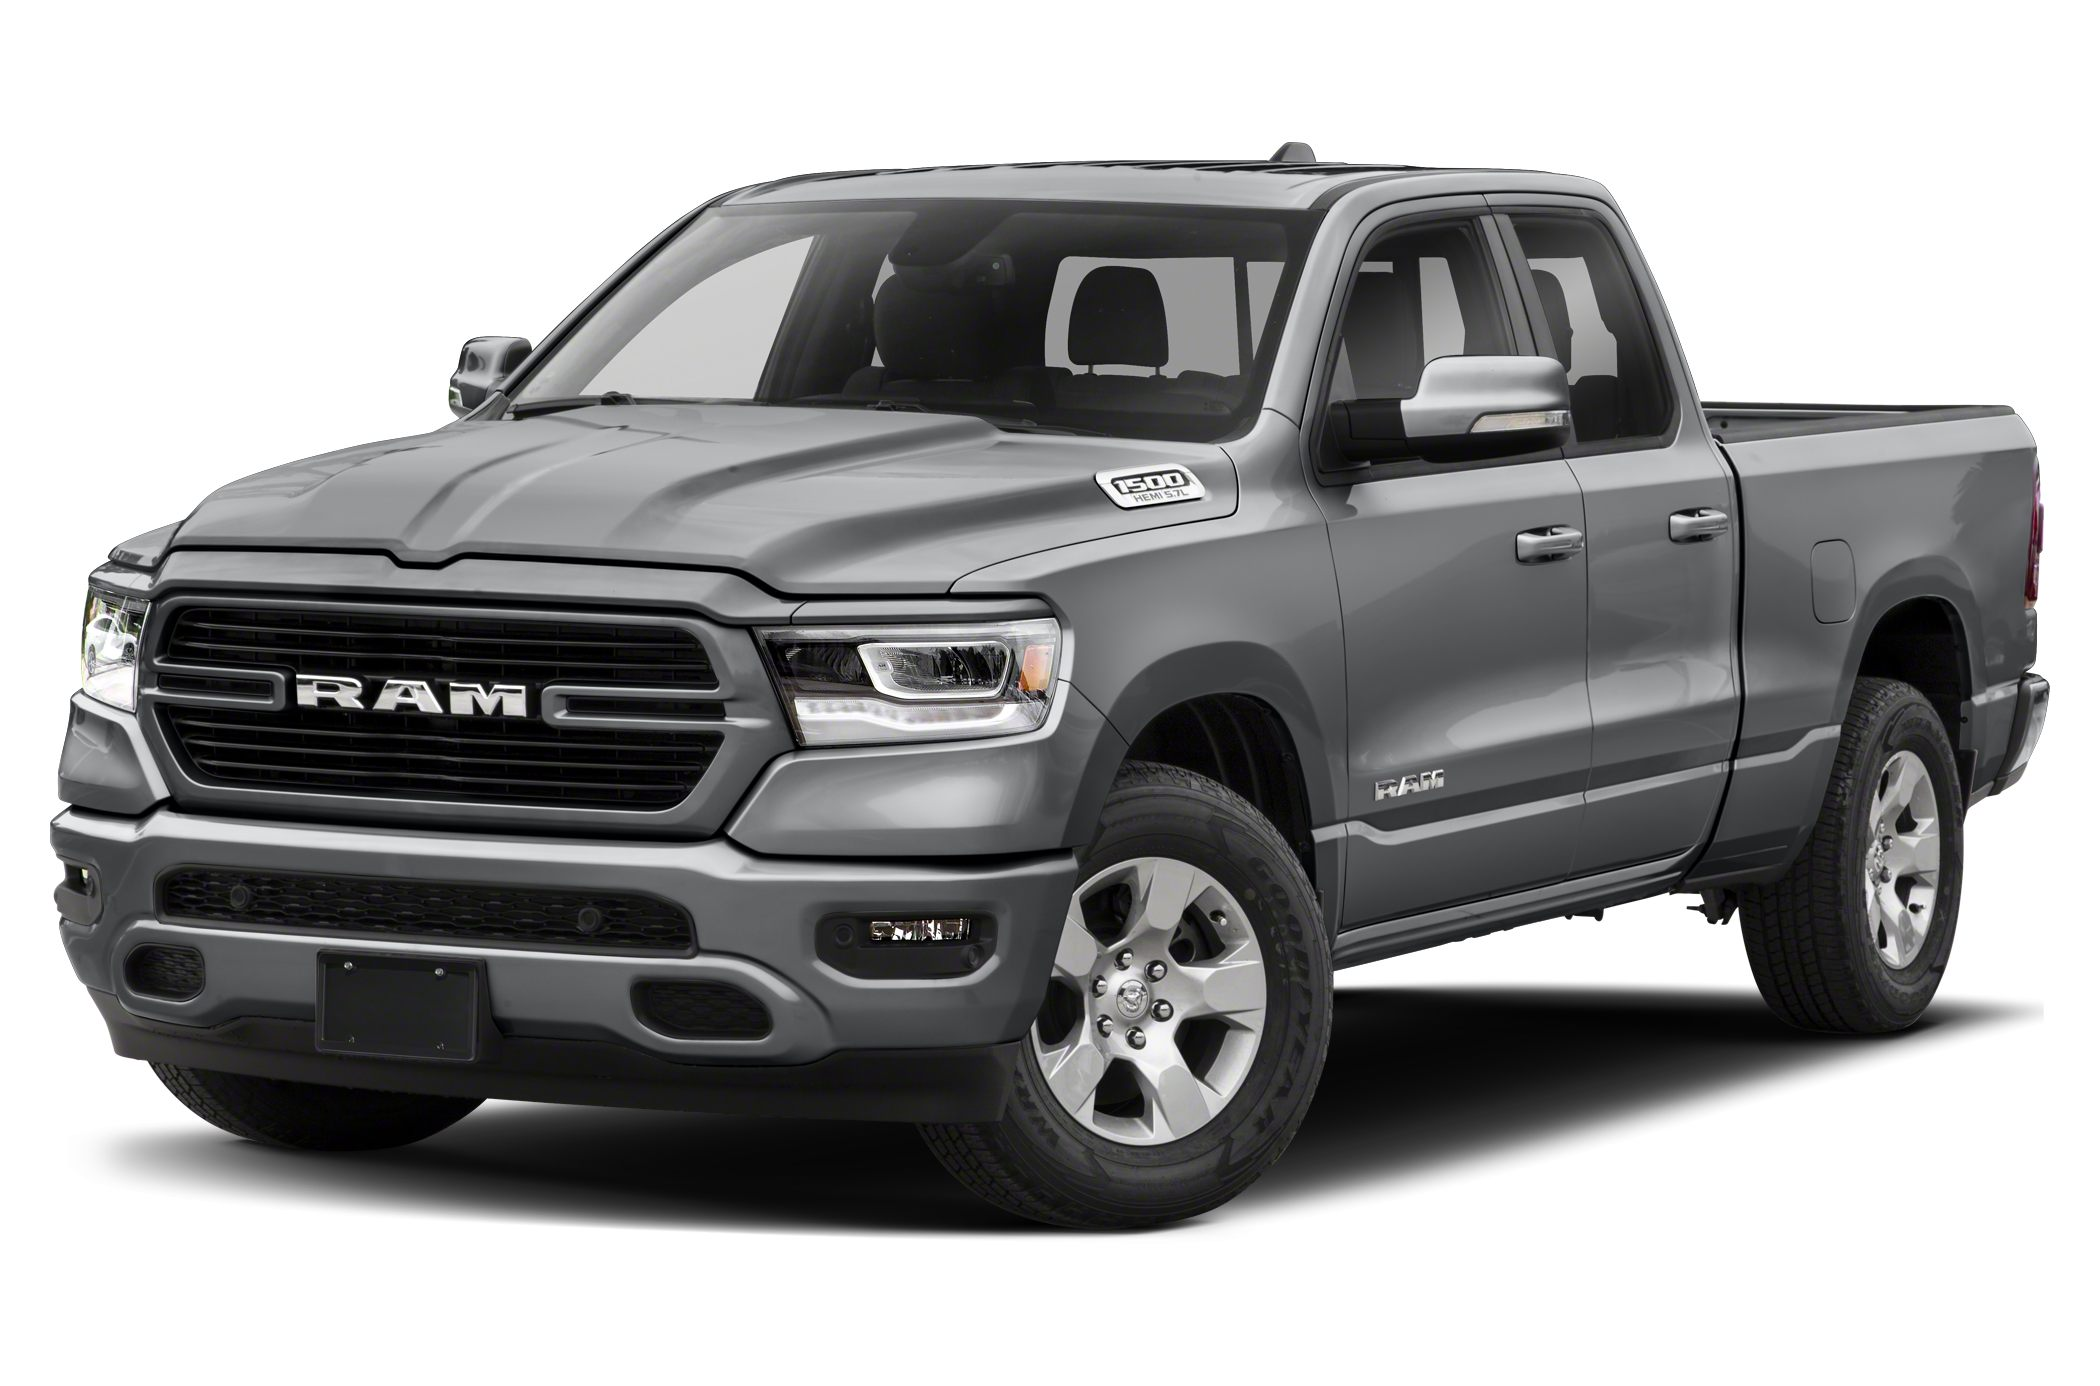 Ram 1500 bests new F-150 in MT pickup shootout